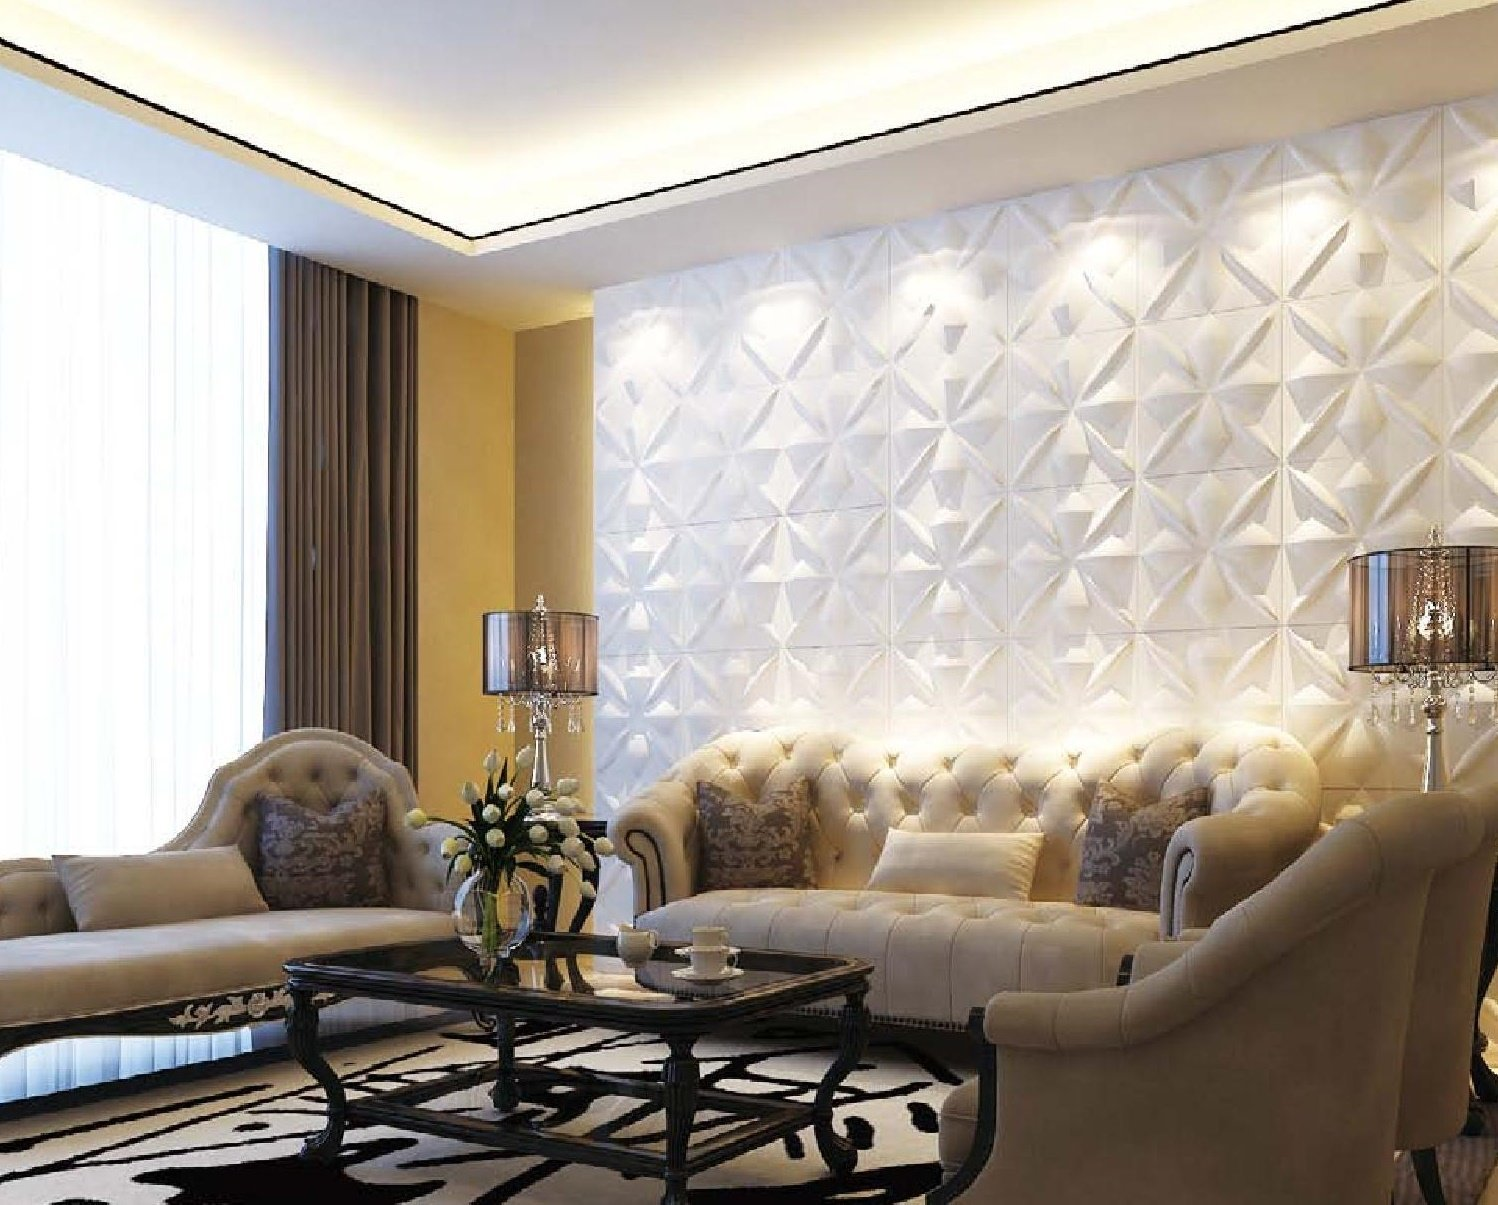 Affordable Home Innovations Modern Kingdom 3d Wall Panels Eco-friendly 32 Sq Ft